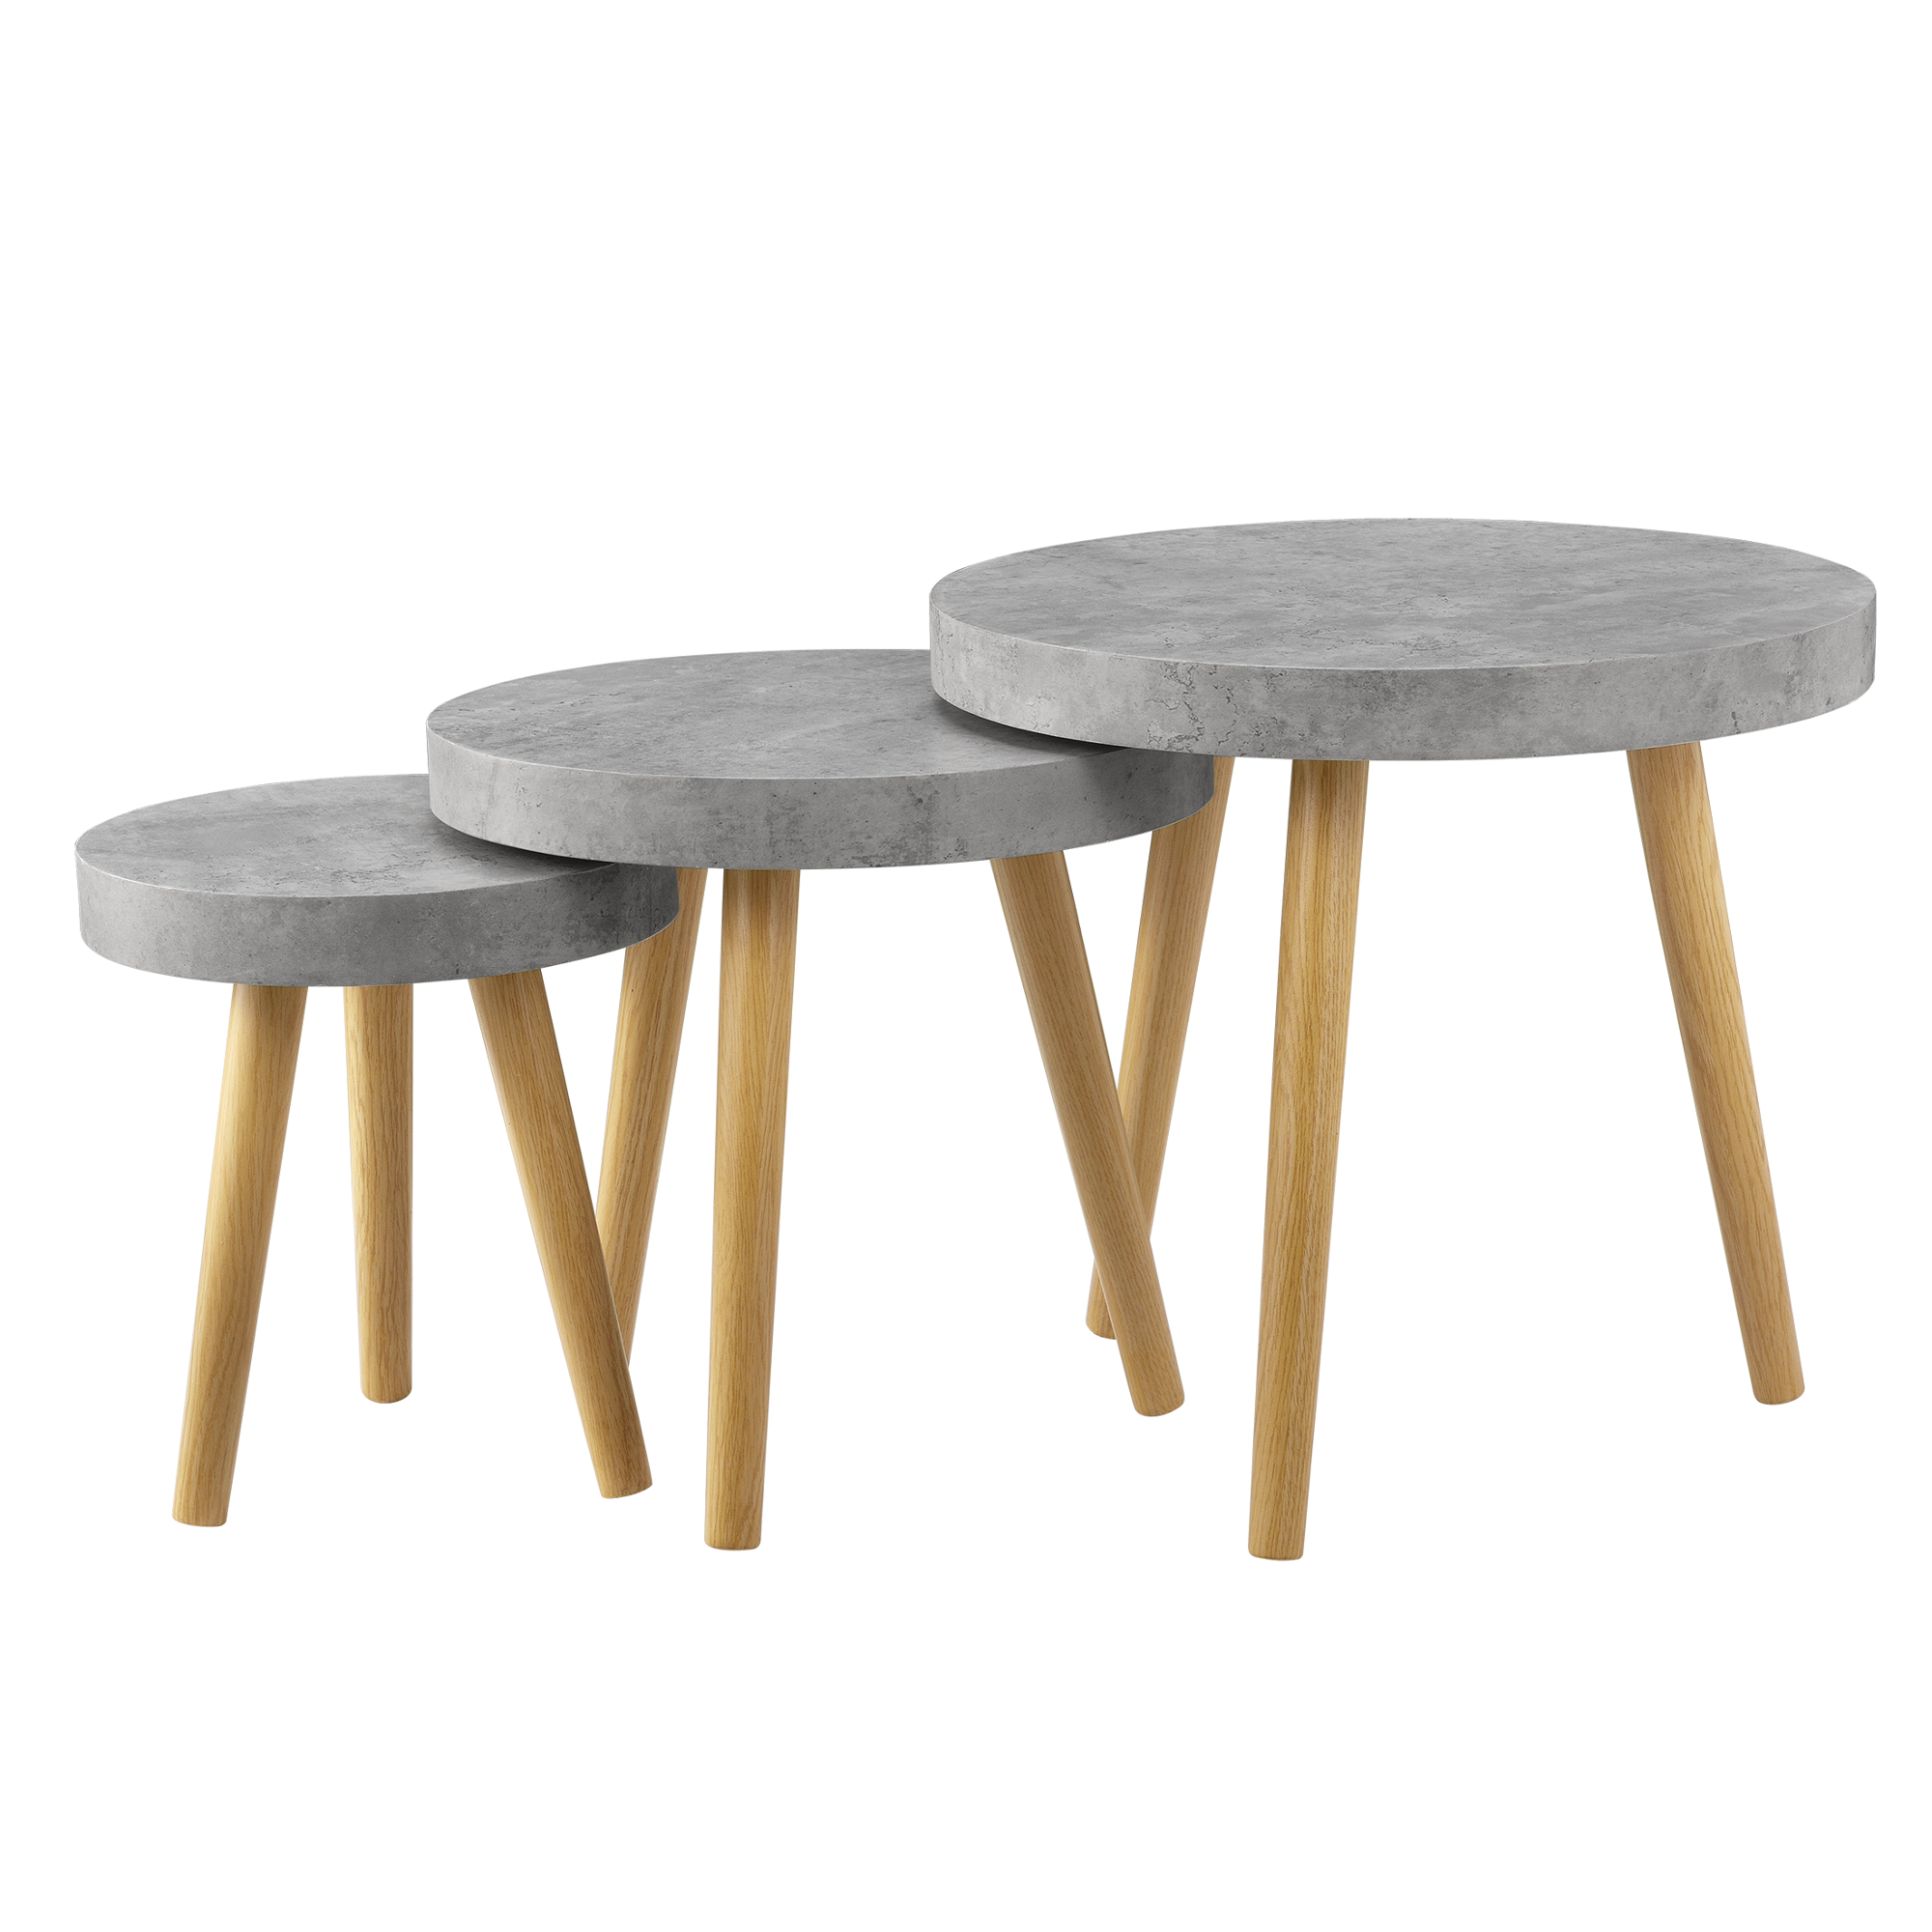 coffee table set of 3 beton grey side table side table living room ebay. Black Bedroom Furniture Sets. Home Design Ideas